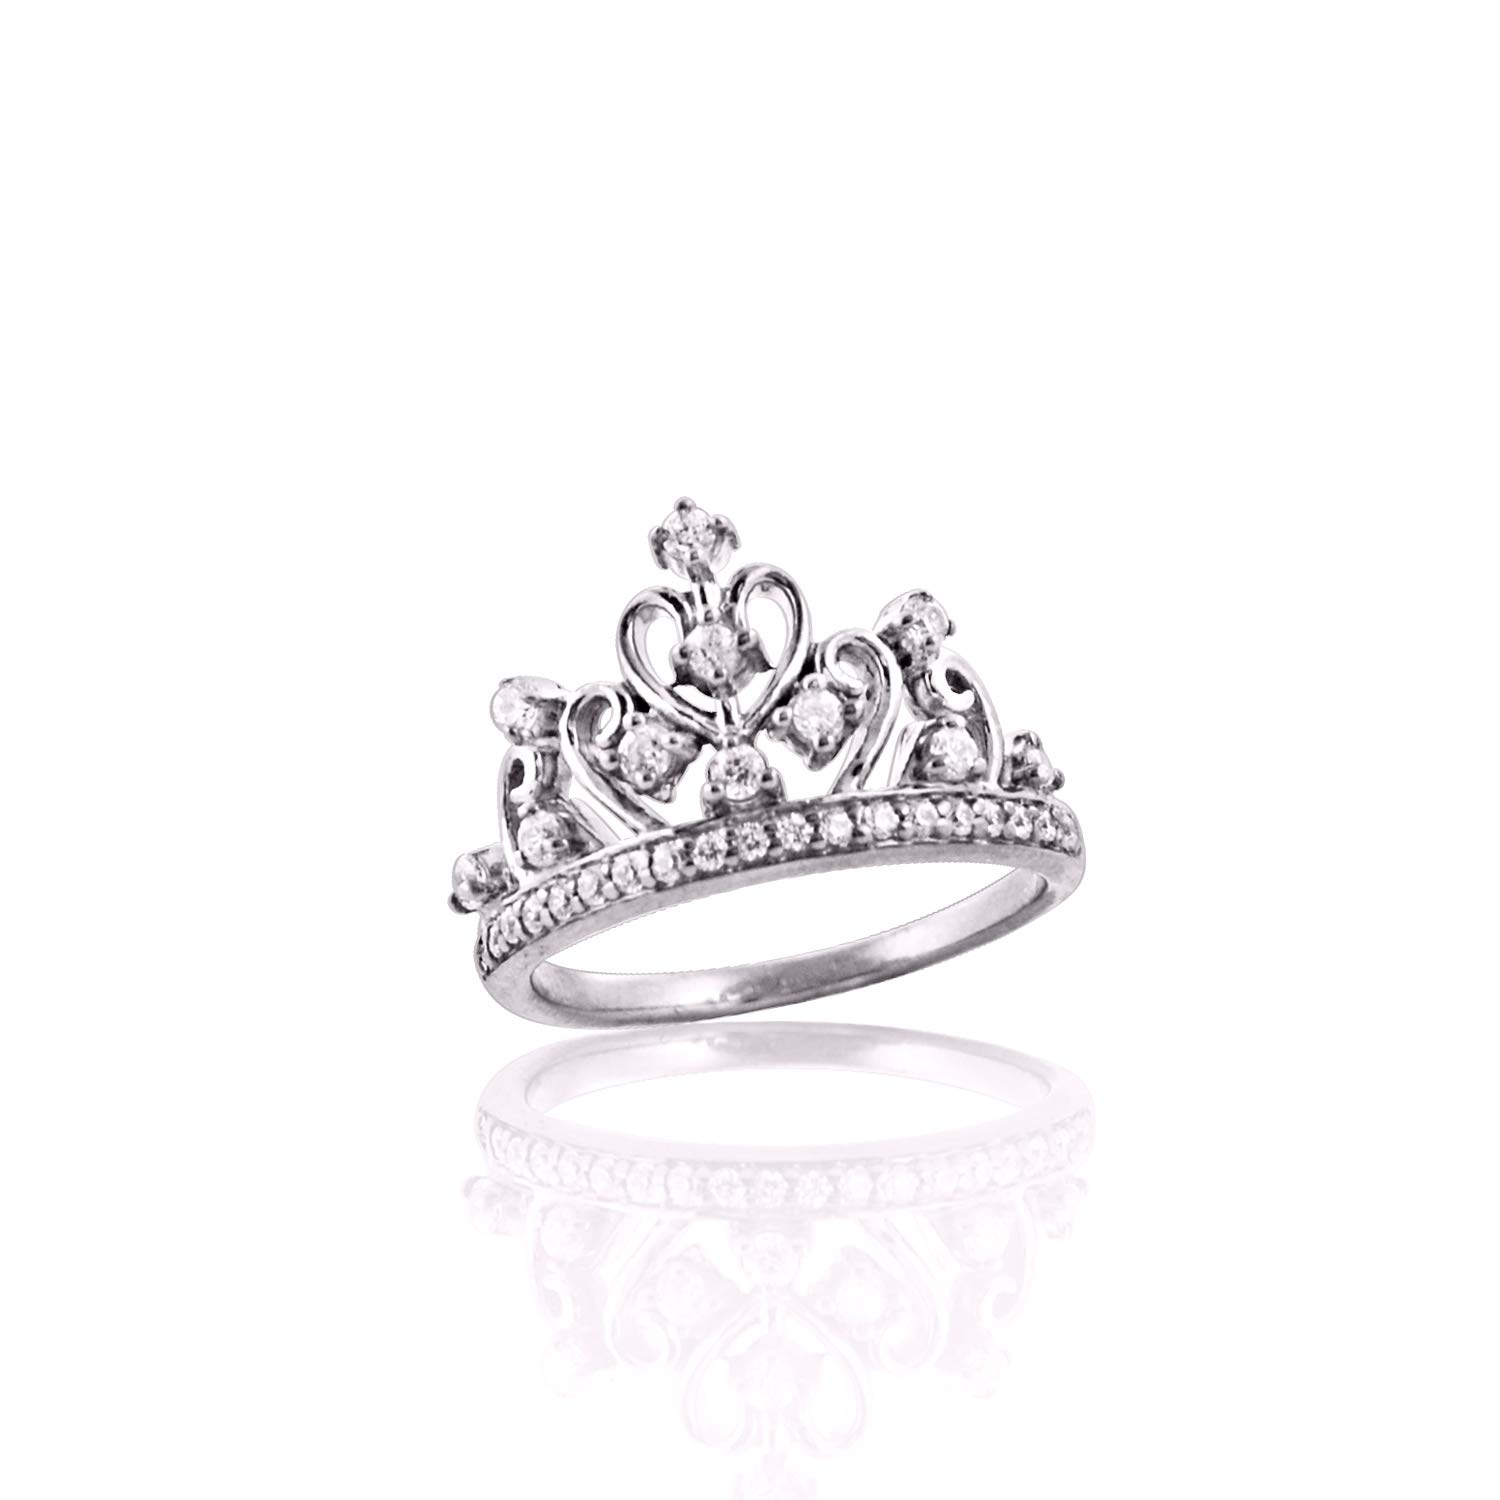 Diamond Scotch Round White Cubic Zirconia Tiara Princess Queen Crown Ring Best for Women Girls in 14k White Gold Over